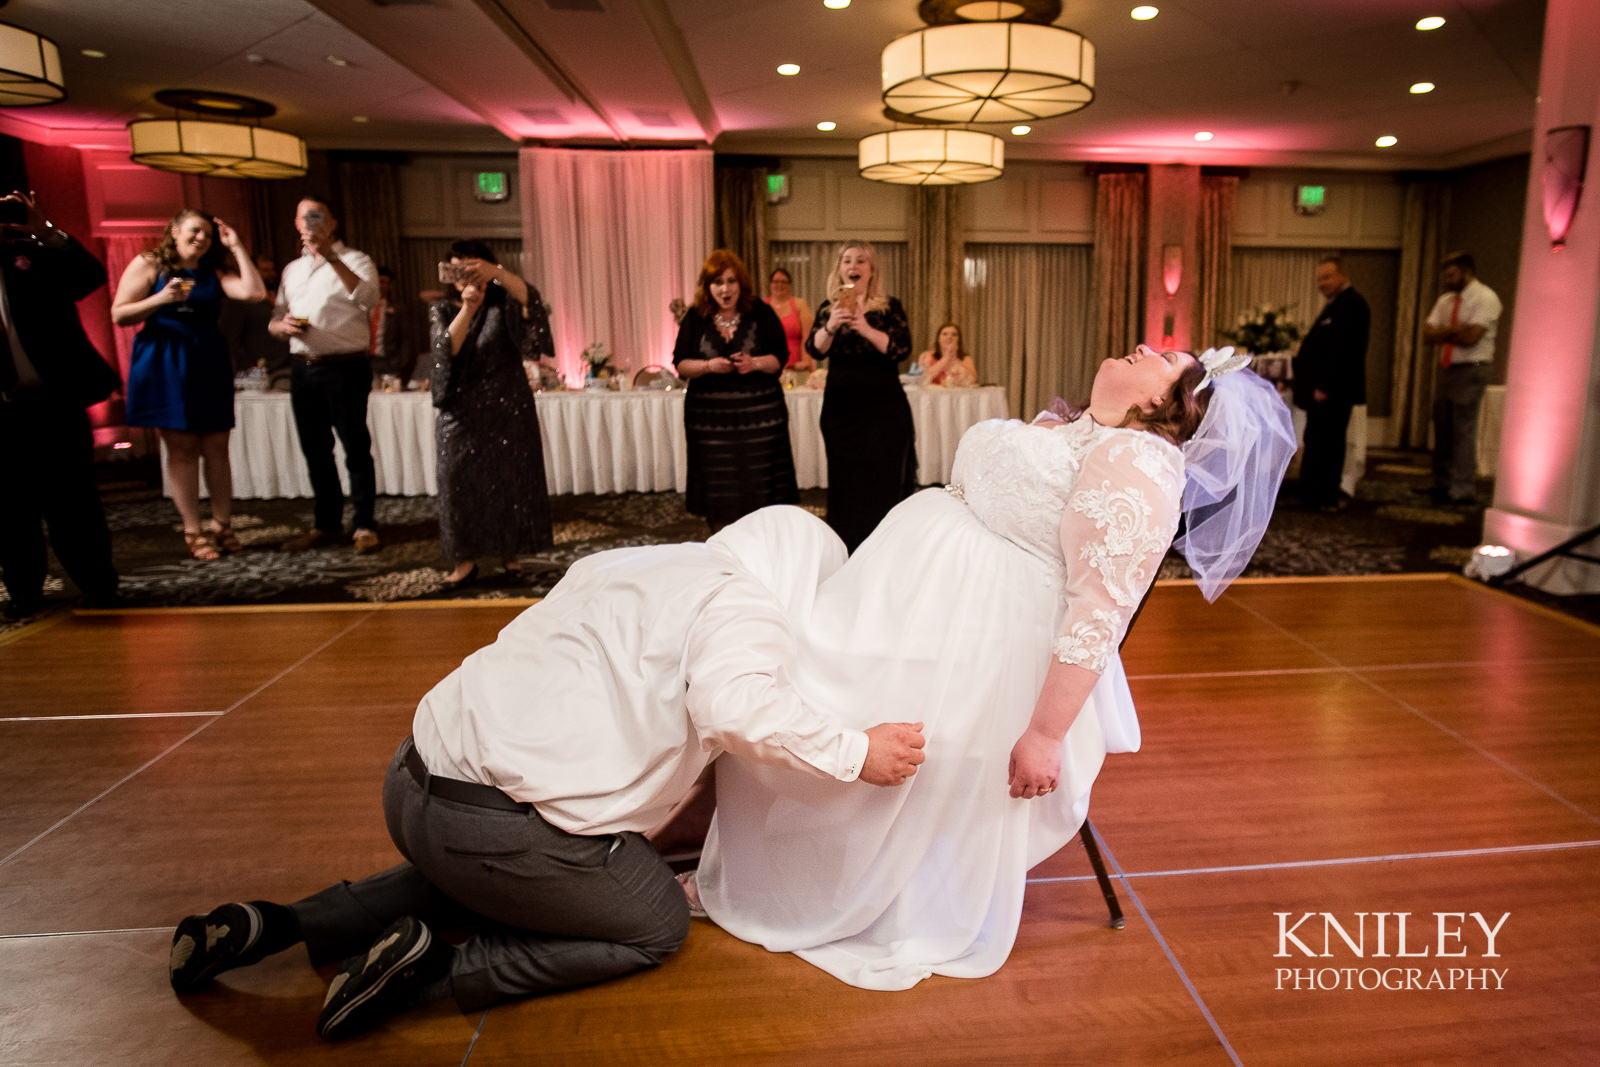 109 - Woodcliff Hotel - Rochester NY wedding photo - Kniley Photography.jpg